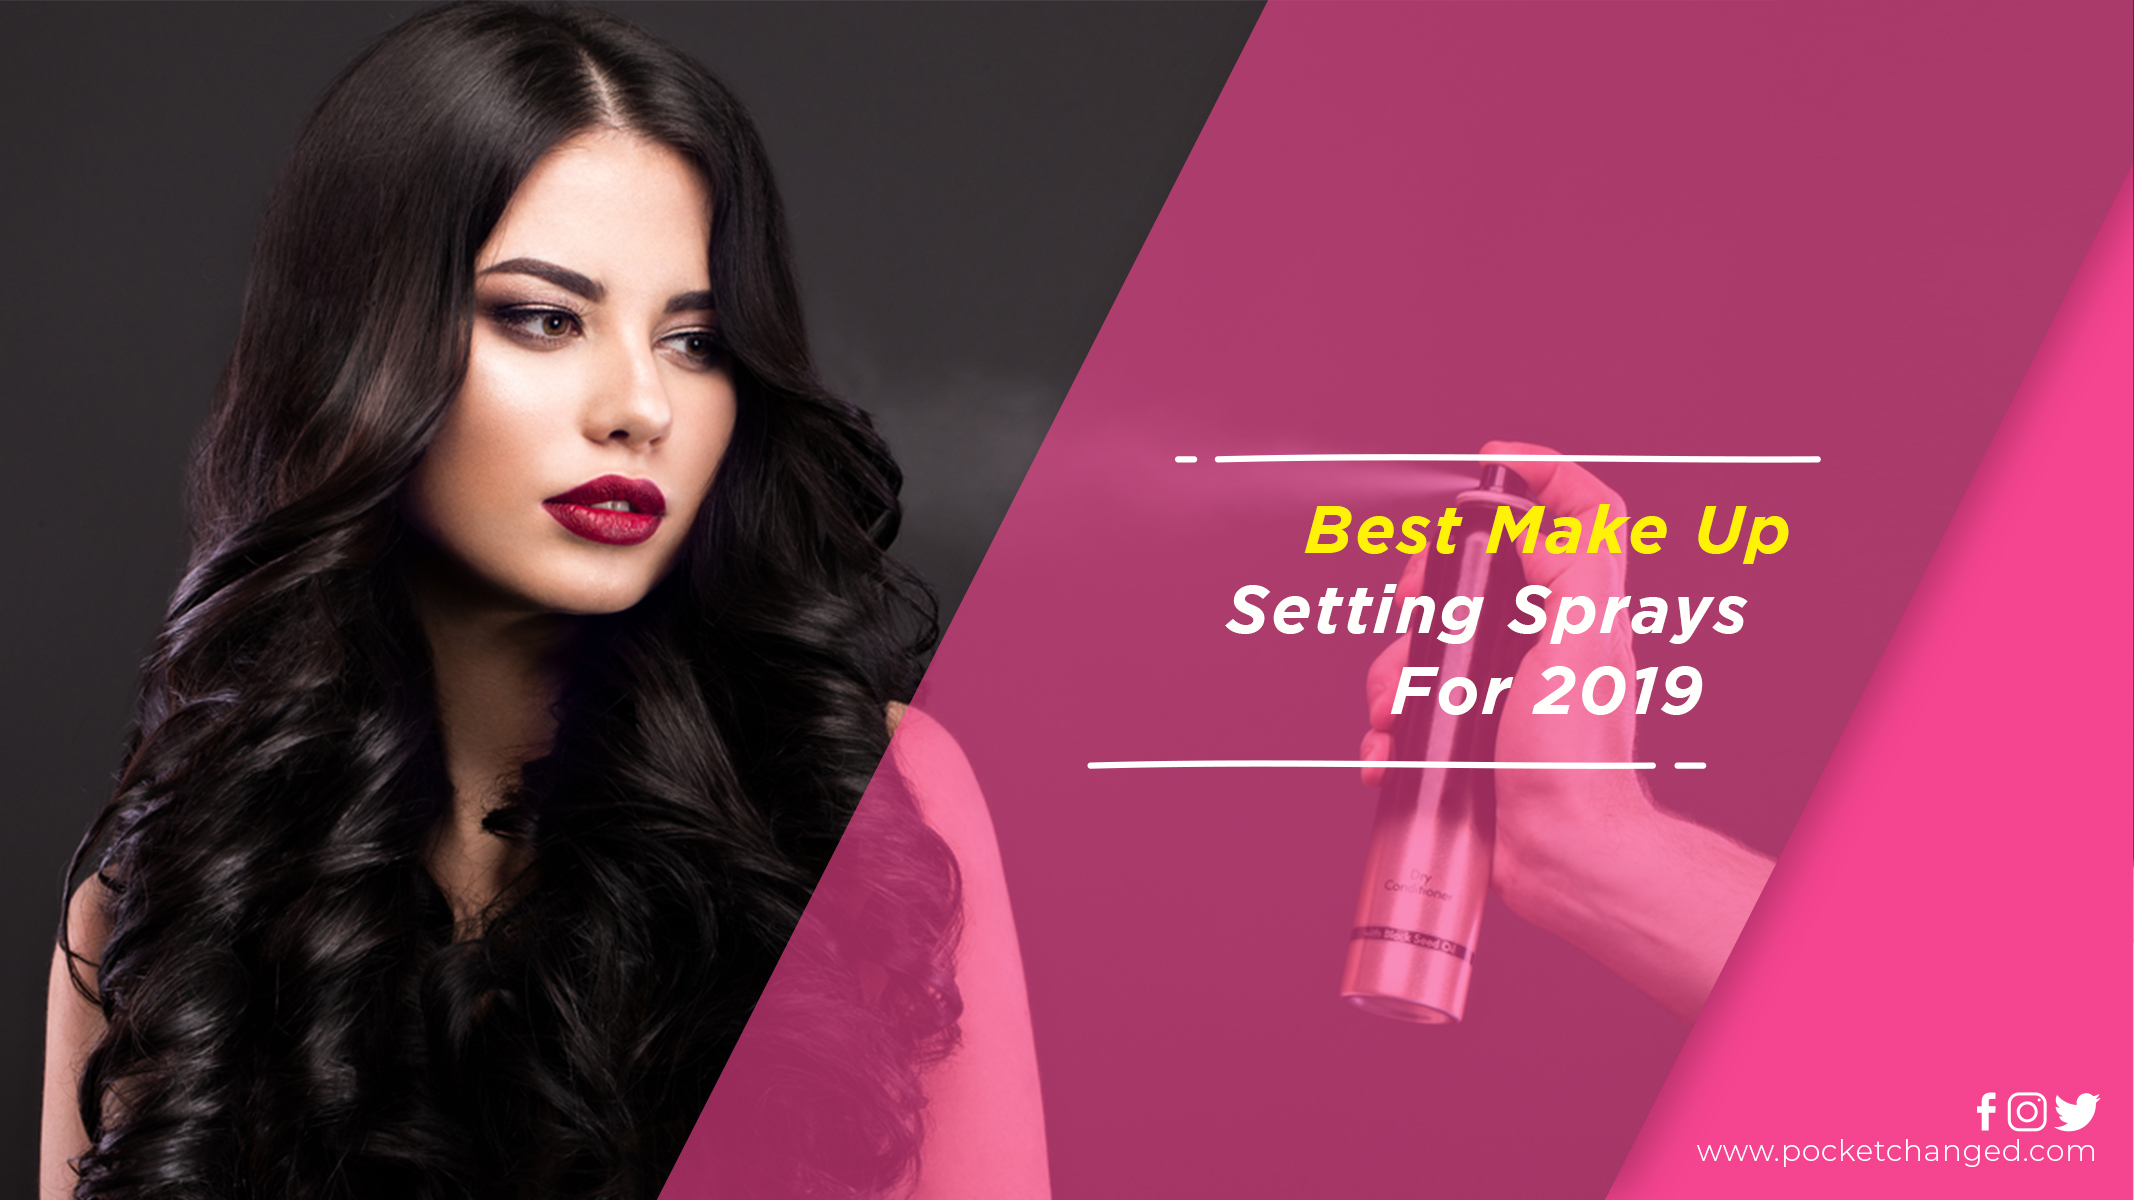 Best-Make-Up-Setting-Sprays-For-2019